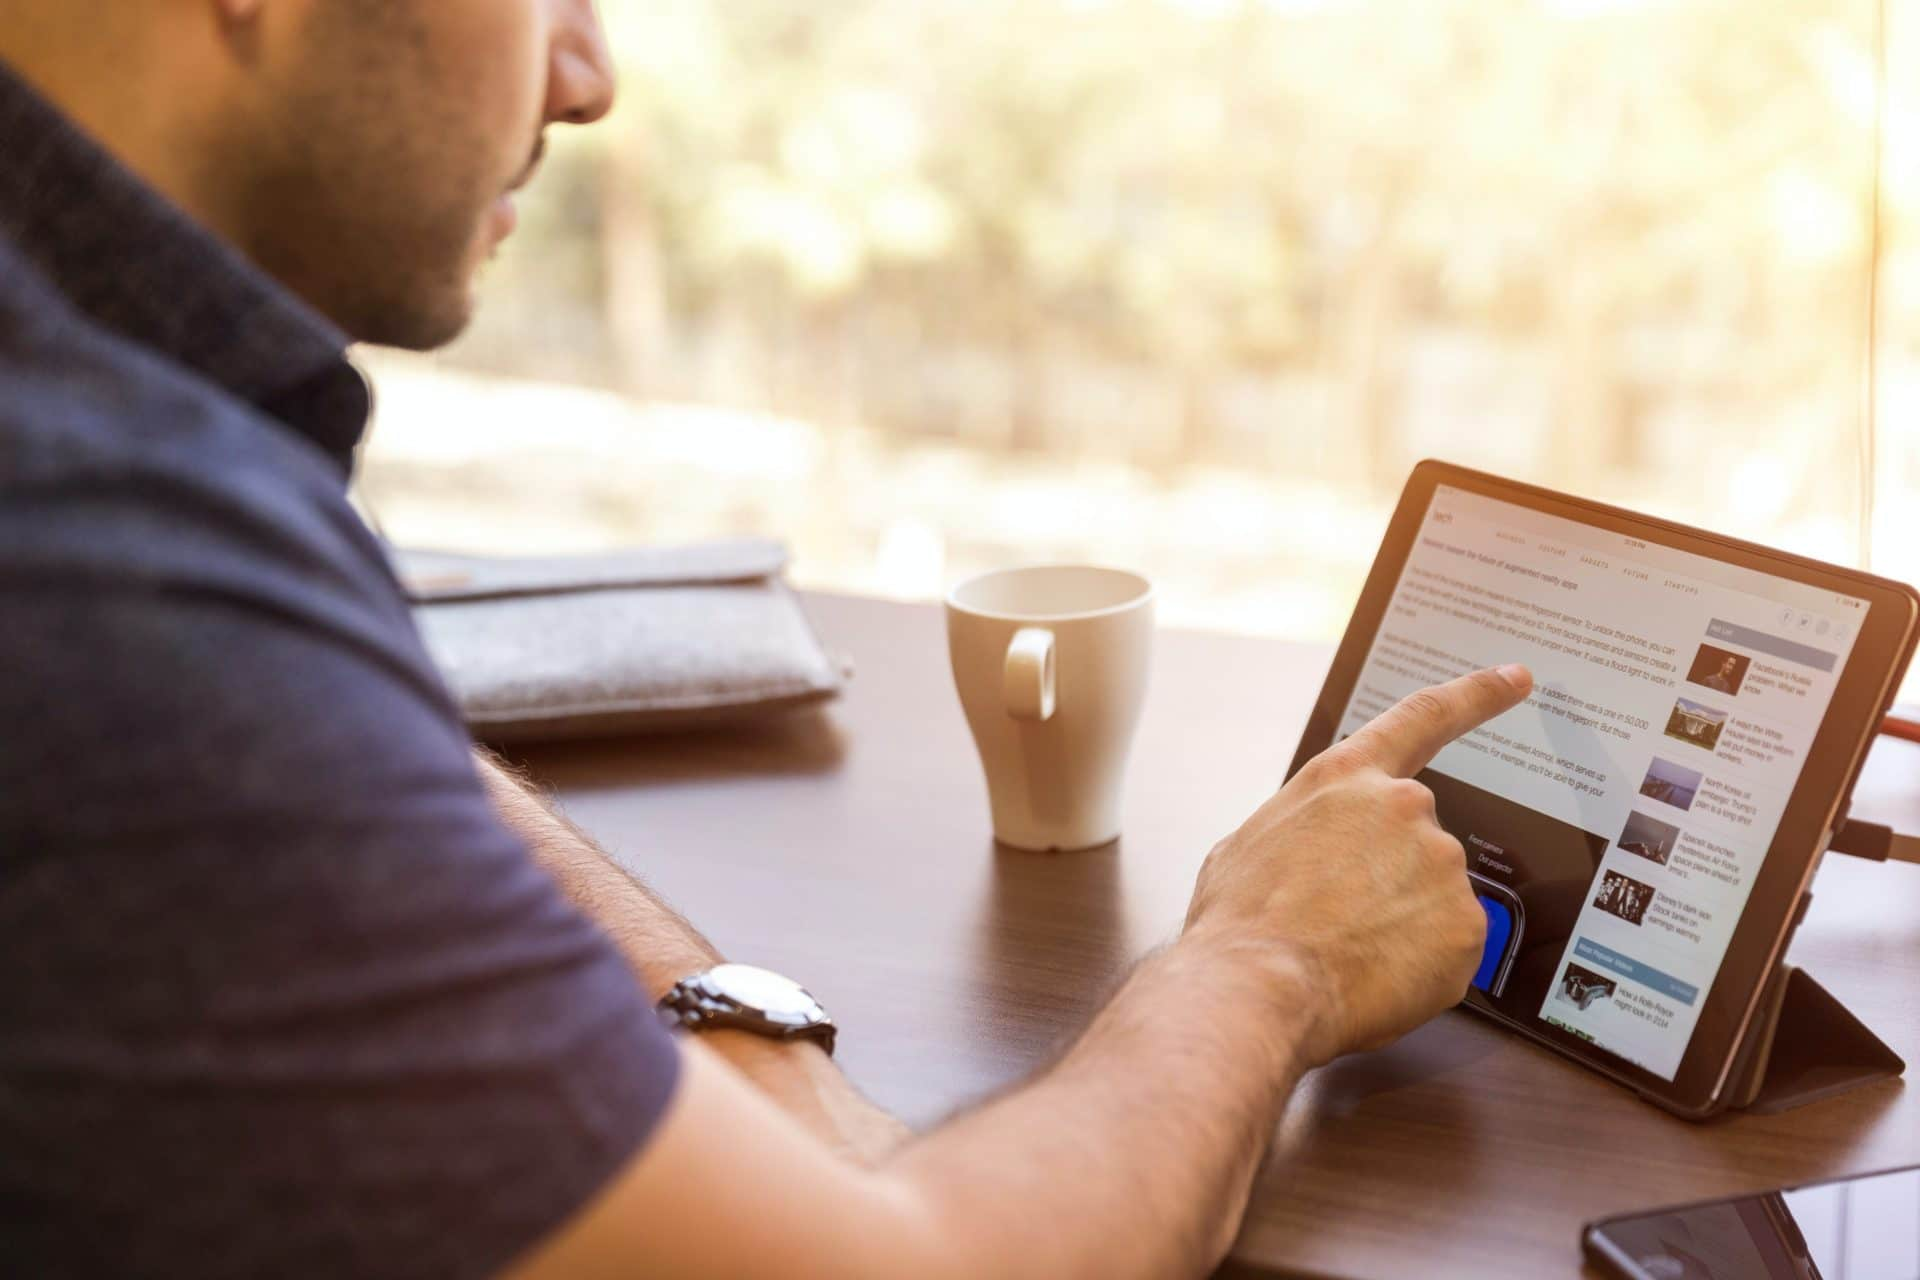 How To Become A Subject Matter Expert Using Linkedin In 12